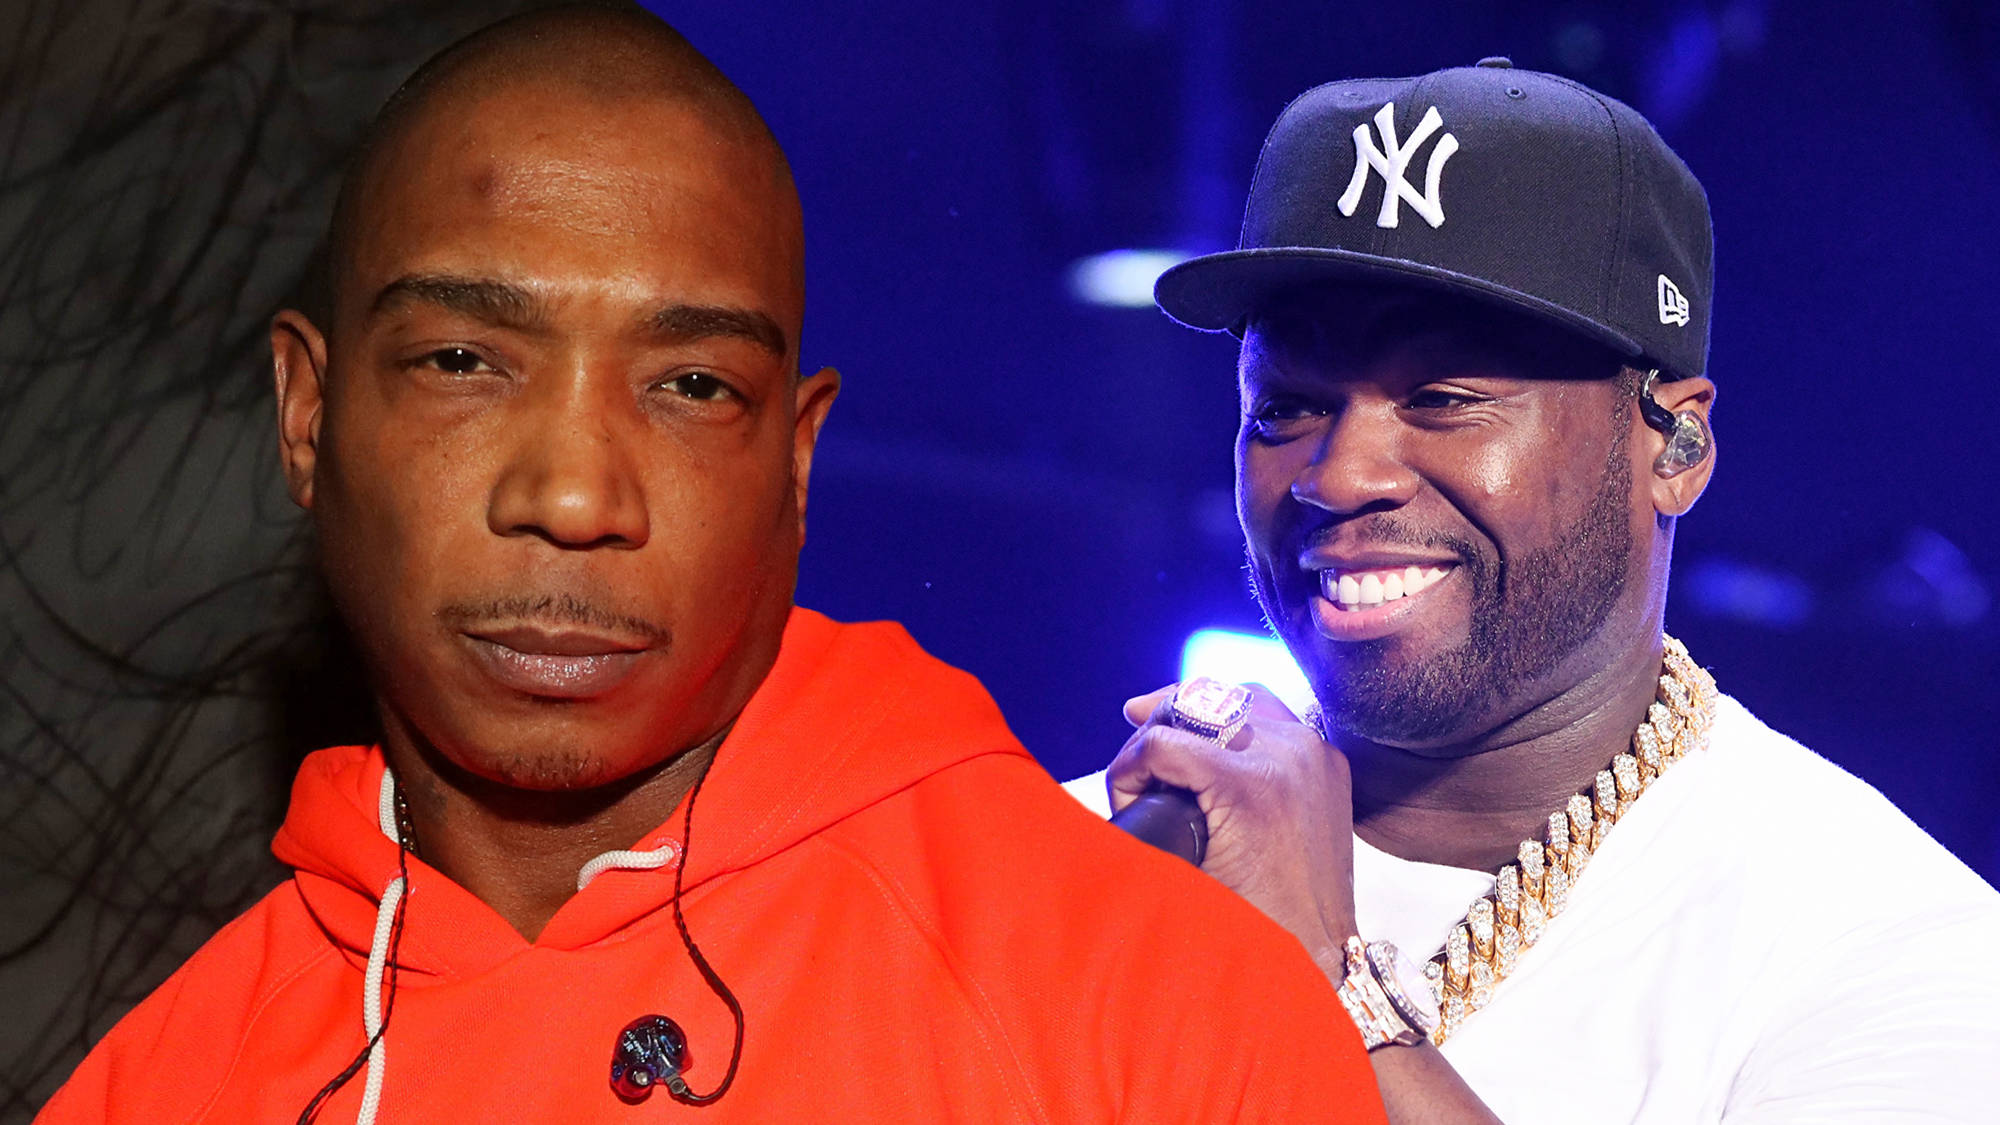 Ja Rule Responds After 50 Cent Trolls Him Over Buying 200 Front Row Seats To His Concert